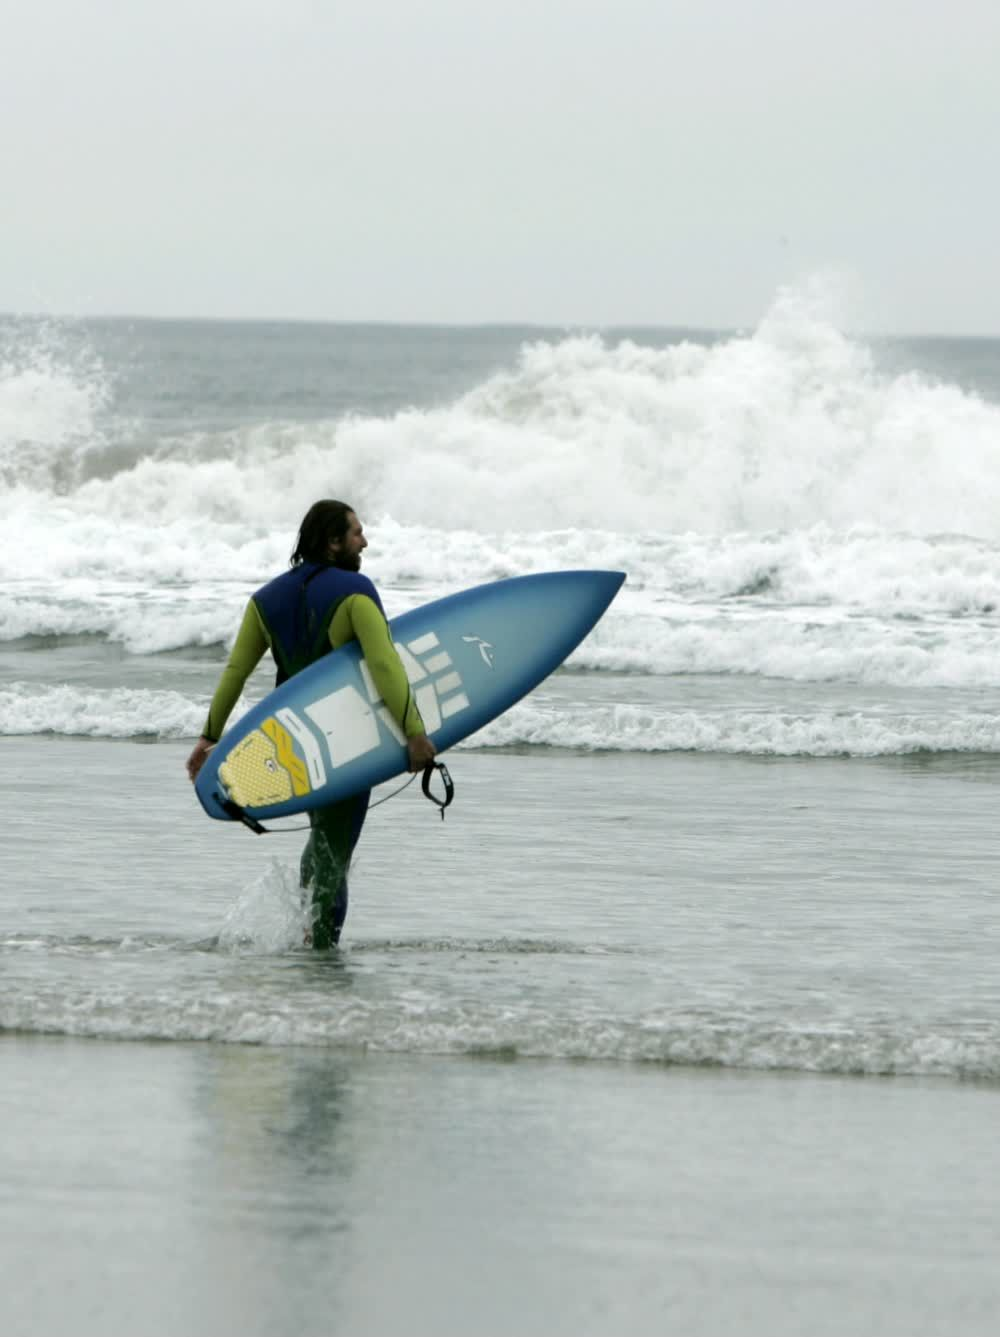 title: Surfing at San Diego s Beach La Jolla1